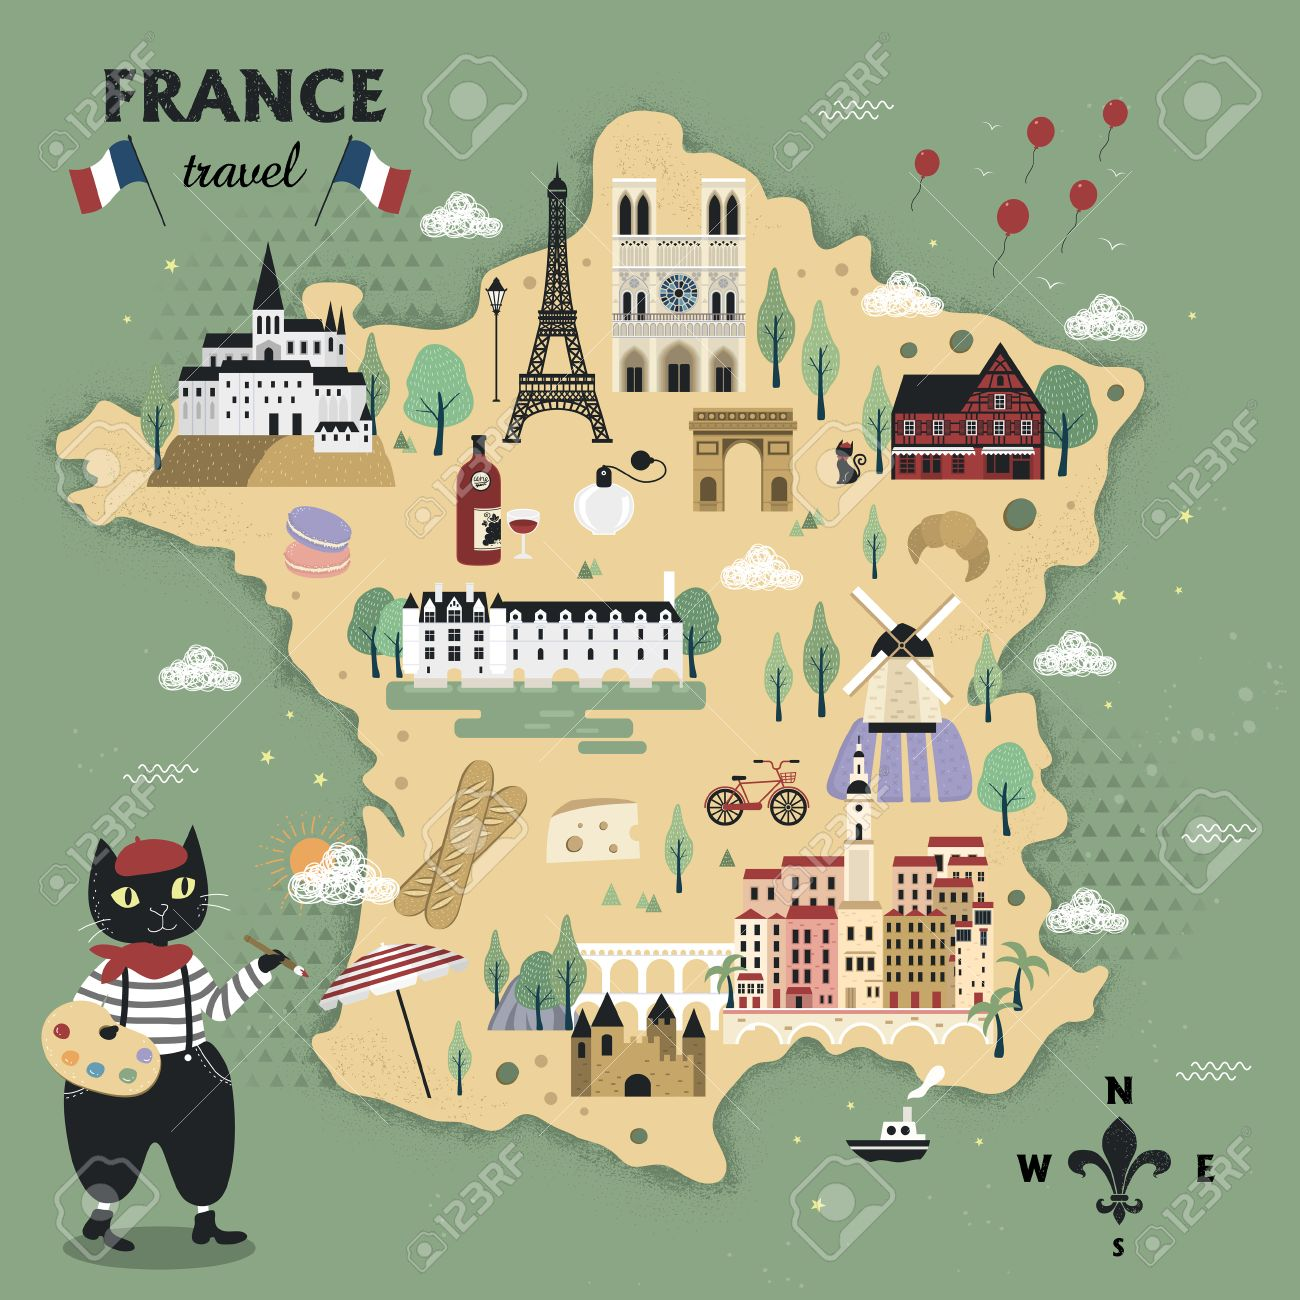 Travel Map Of France.Adorable France Travel Map Design With Cats And Famous Attractions